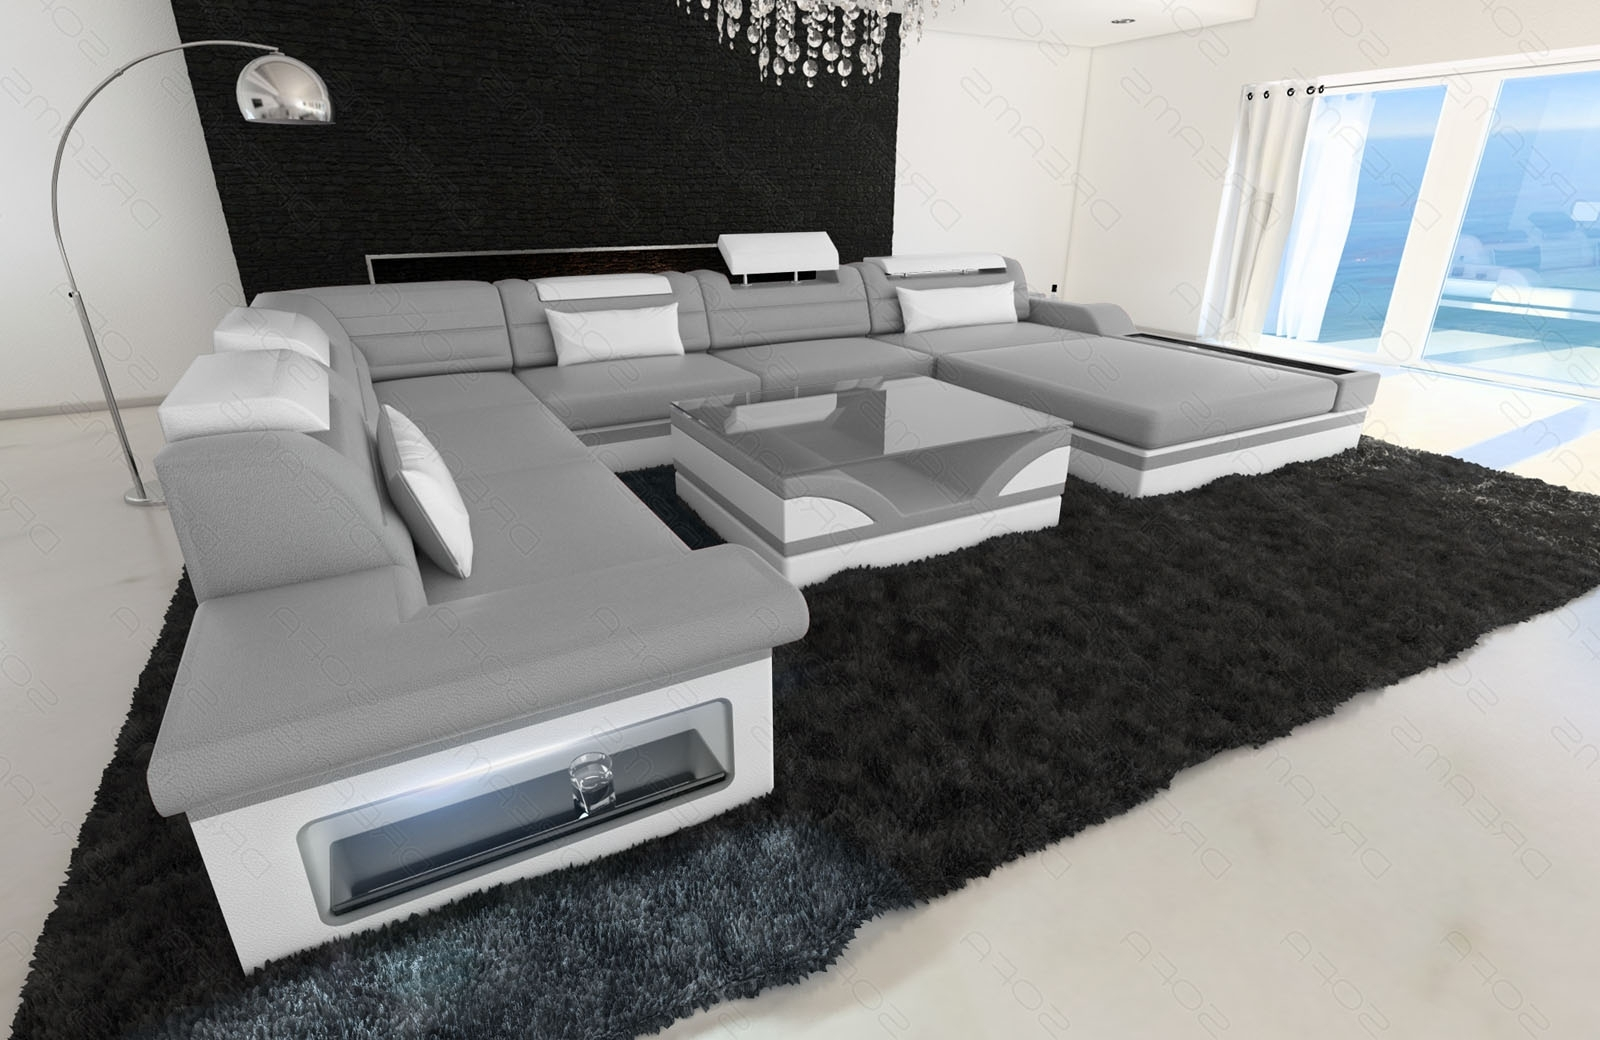 Sofa Mezzo Xxl With Led Lights Genuine Leather Luxury Design In Preferred Luxury Sectional Sofas (View 11 of 20)